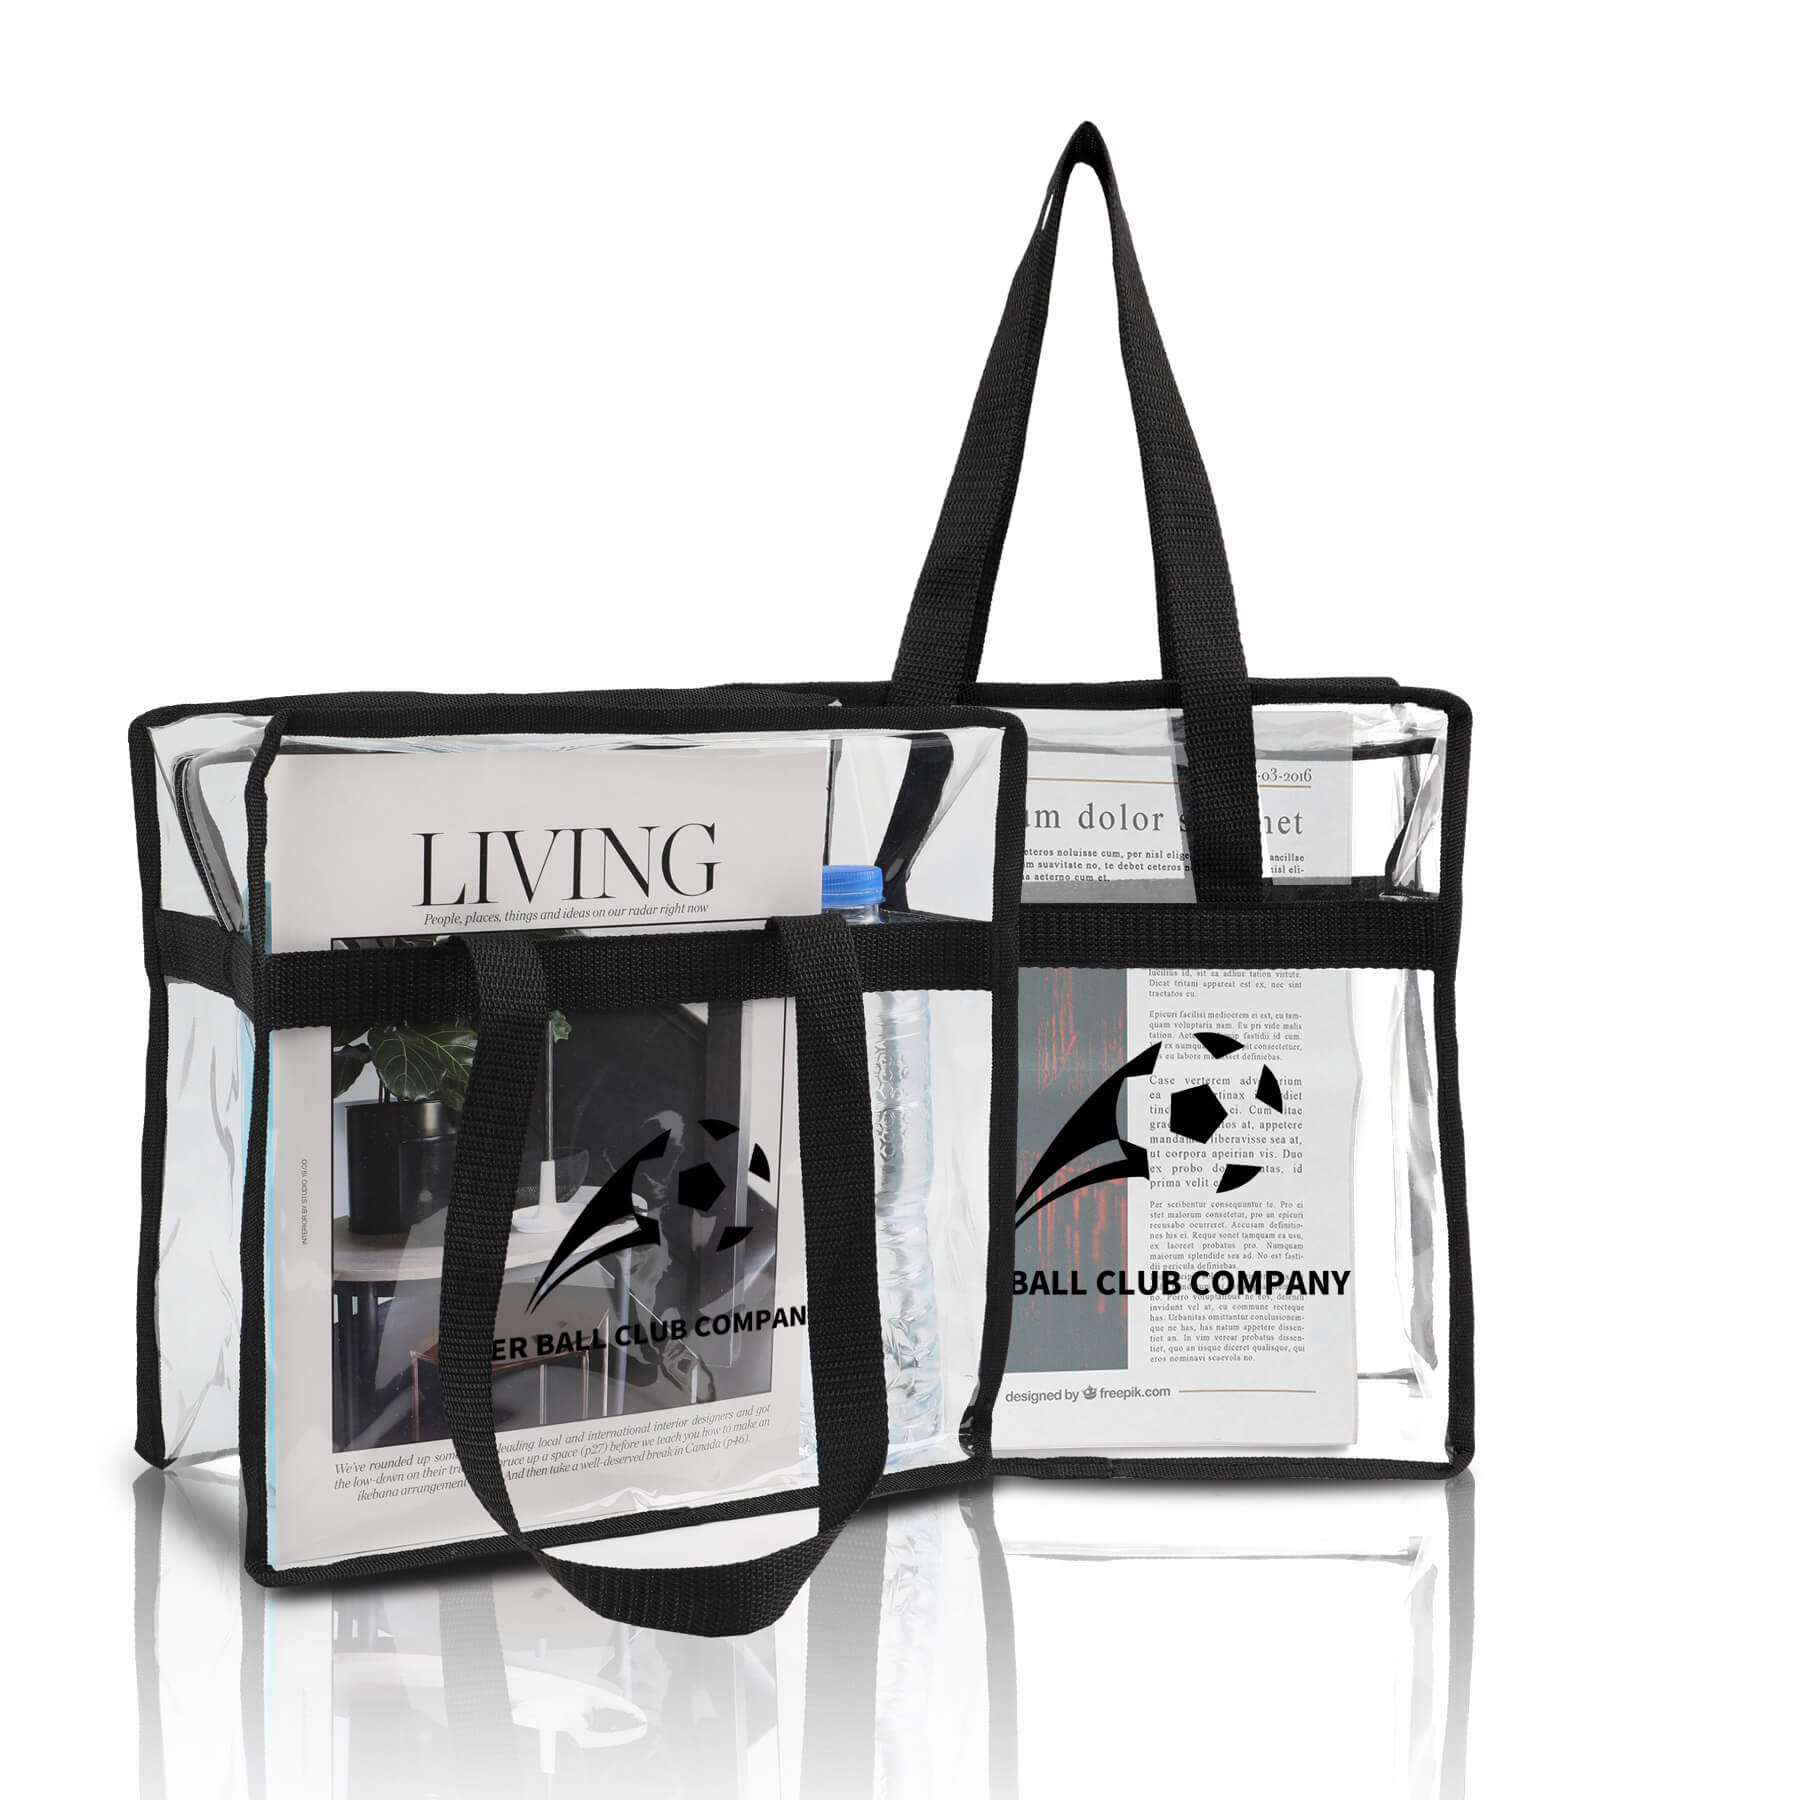 Clear Tote Bag With Zipper Closure - Clear Tote Bag With Zipper Closure